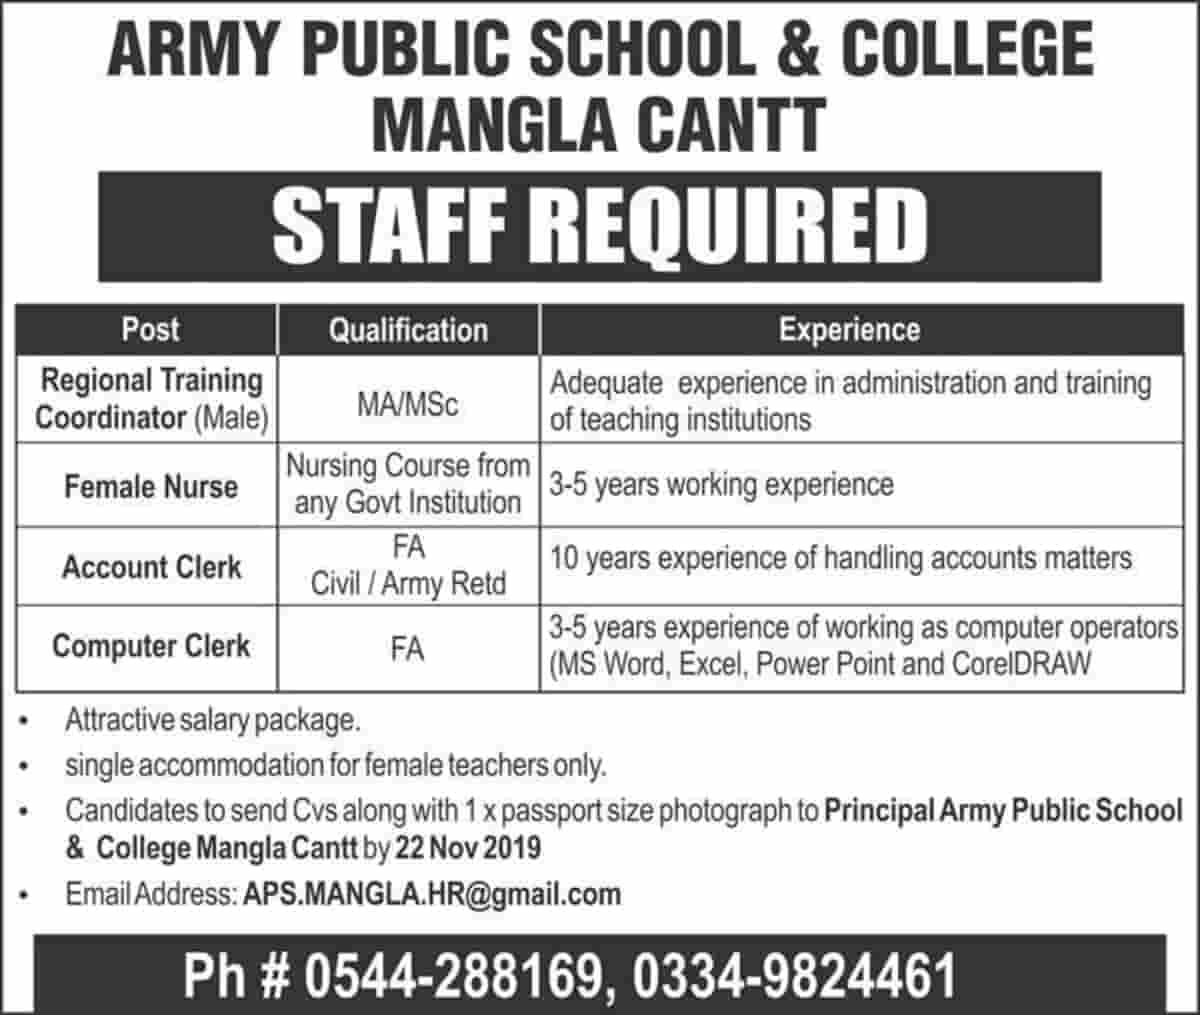 Army Public School and College Mangla Cantt Jobs November 2019